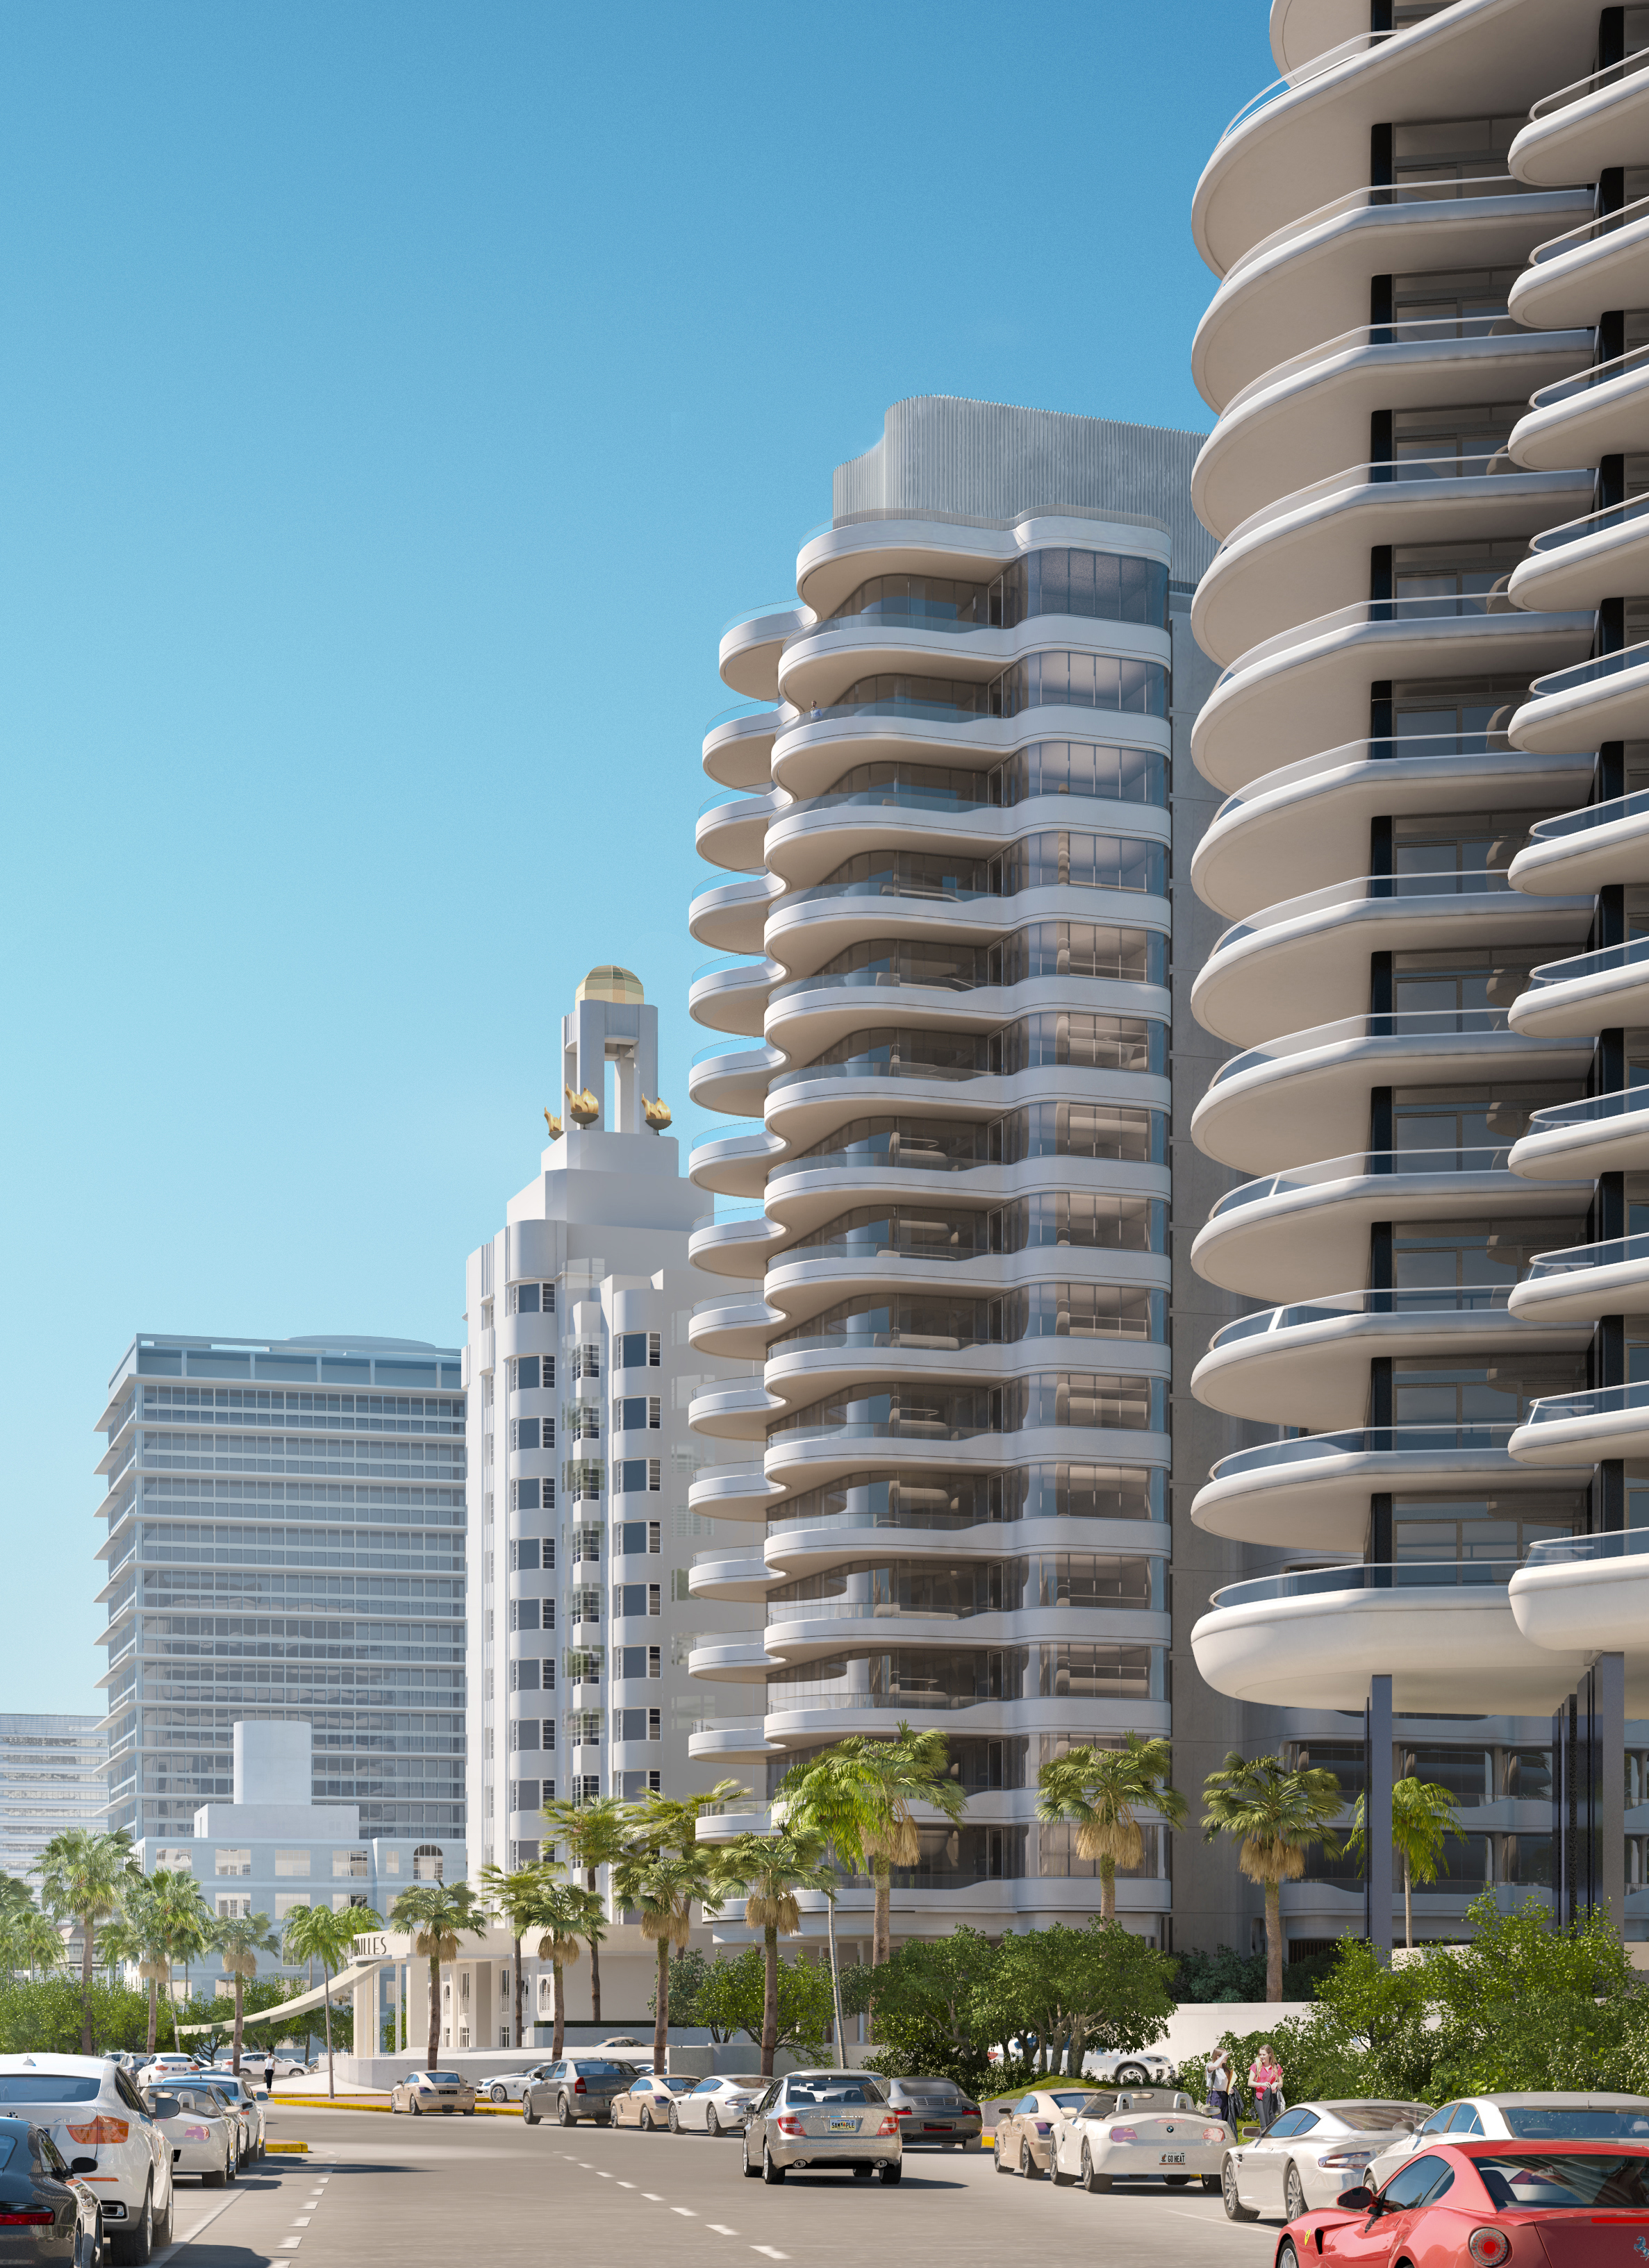 Faena Mar (centre)engages both with the contemporary Faena House to the south and the historic Versailles Hotel to the north